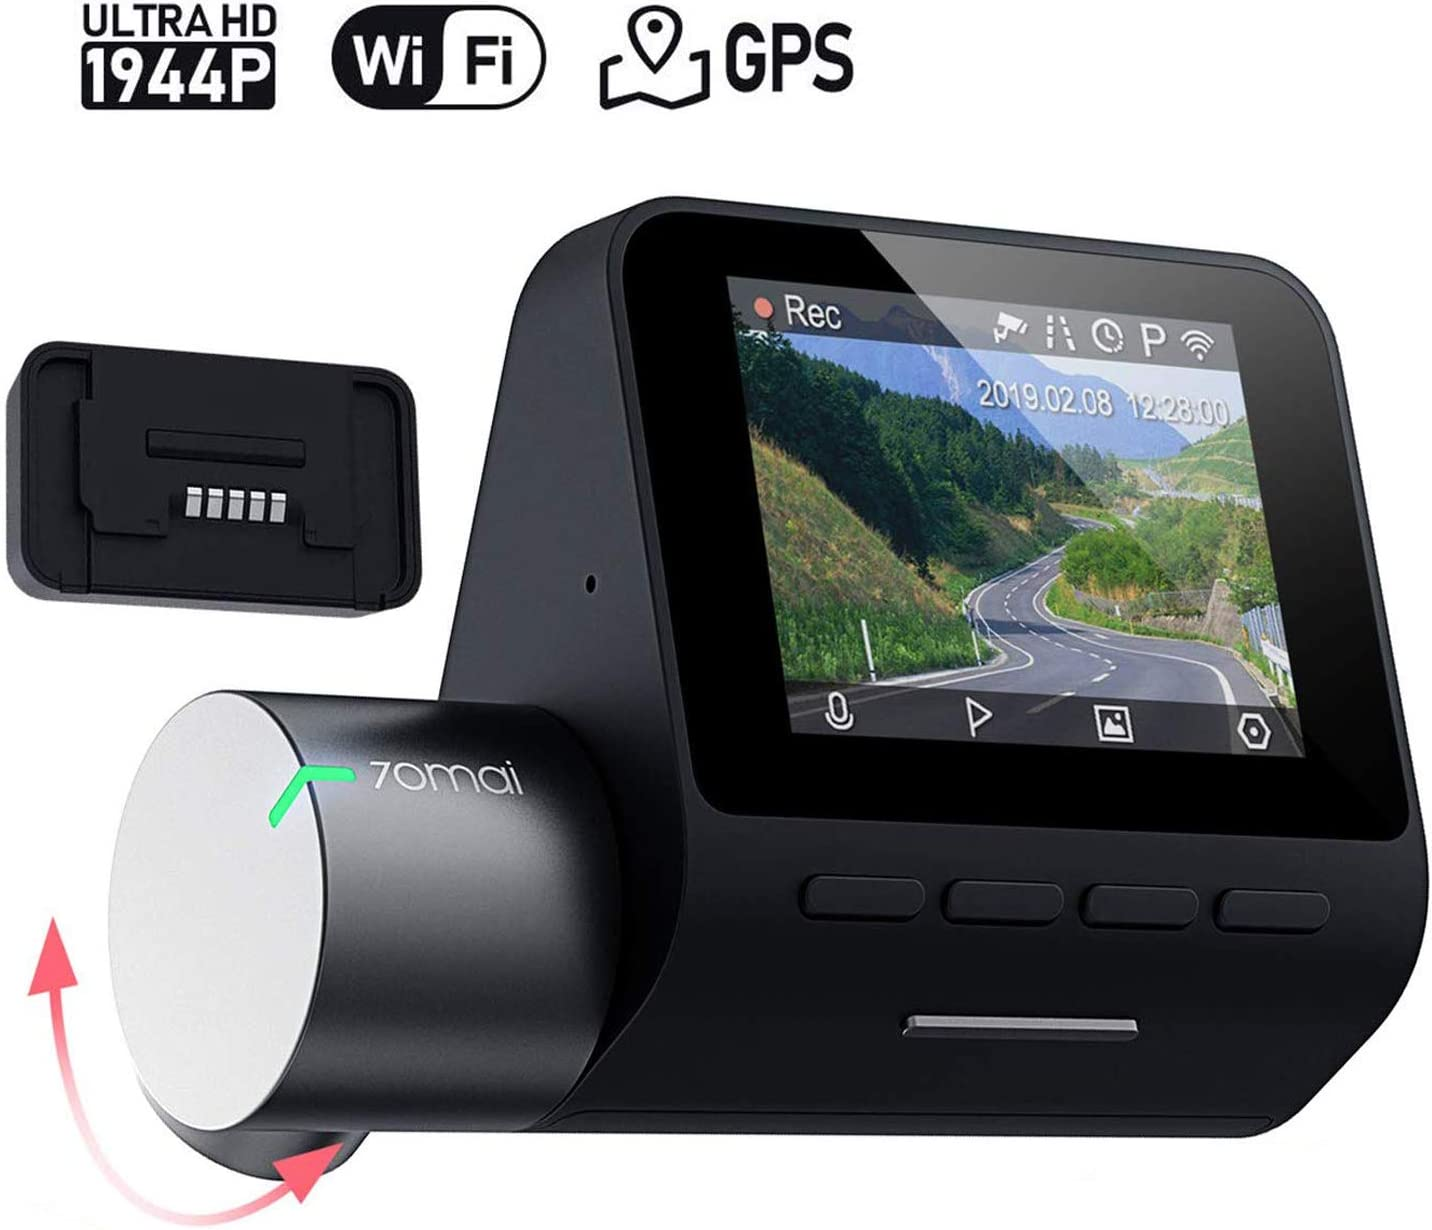 Loop Recording App WiFi Night Vision Motion Detection 70mai Smart Dash Cam Pro 2 LCD Screen 2020 2K Dash Cam Recorder Voice Control Parking Monitor High Resolution 1944p G-Sensor WDR